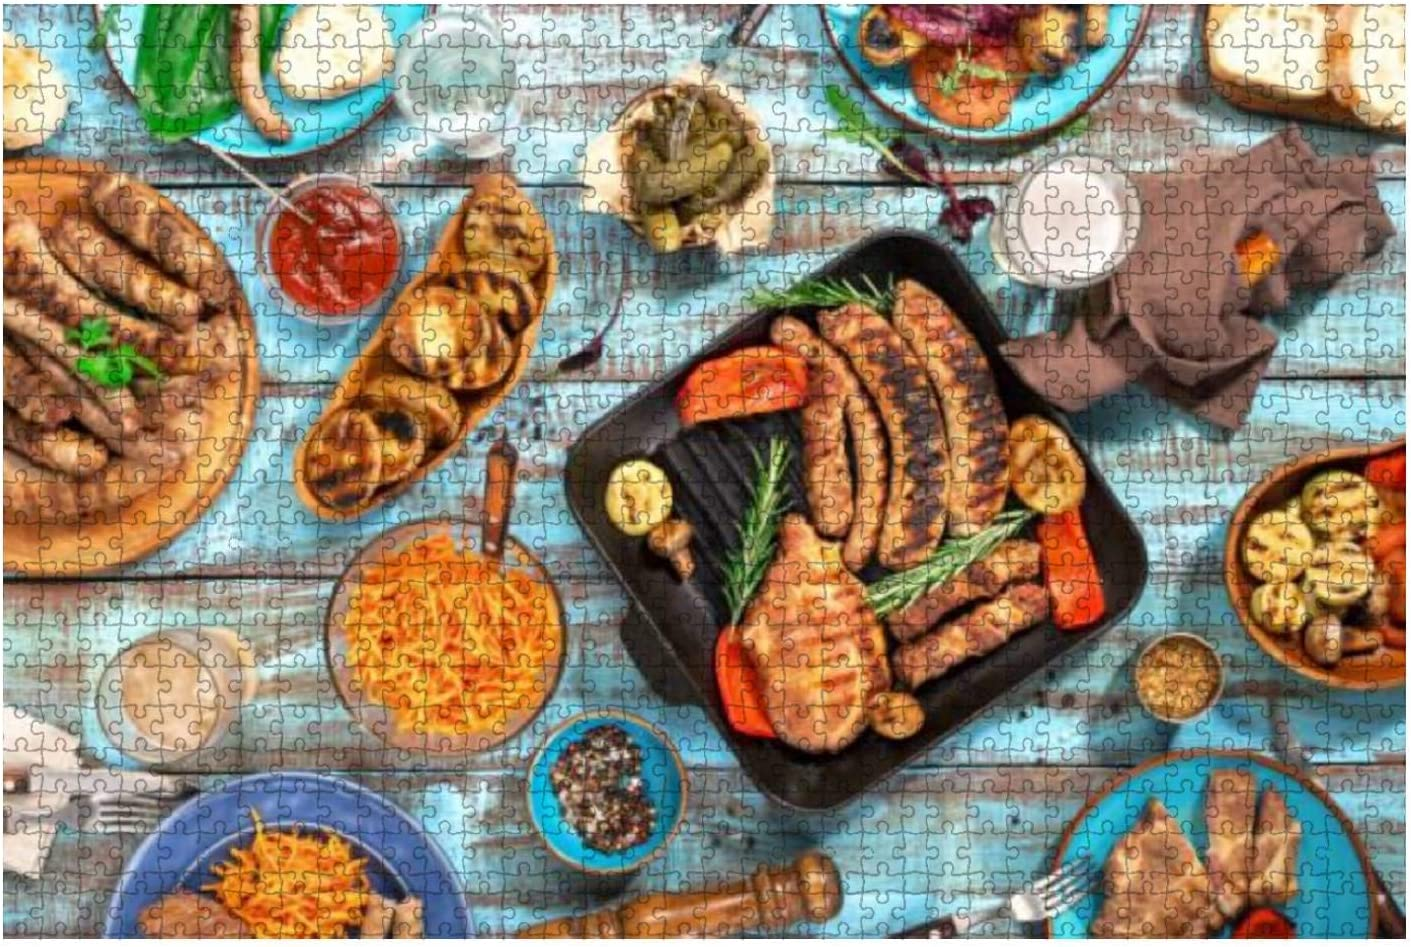 Wooden Puzzle 1000 Pieces Variety of Food Grilled on Wooden Table top View Jigsaw Puzzles for Children or Adults Educational Toys Decompression Game